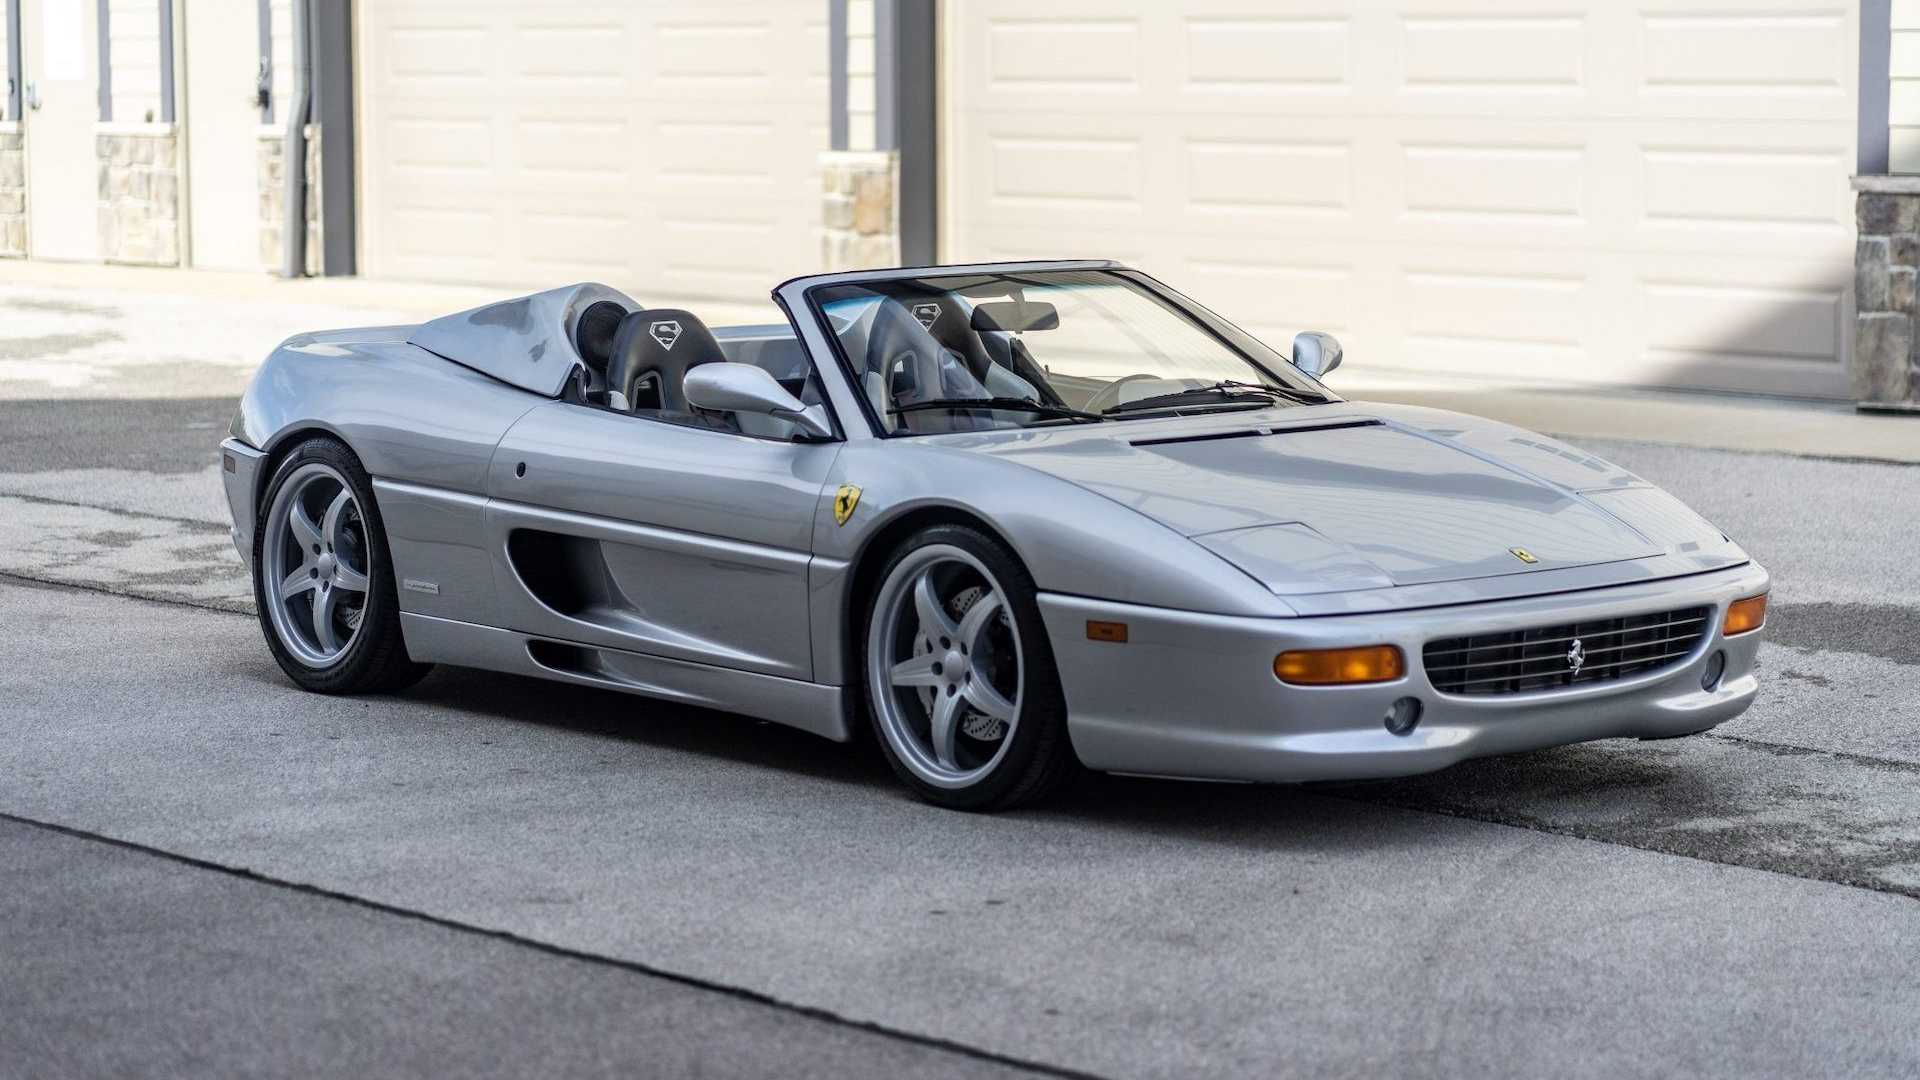 Shaquille O'Neal's Ferrari F355 Spider For Sale Is Ready For Big Guys